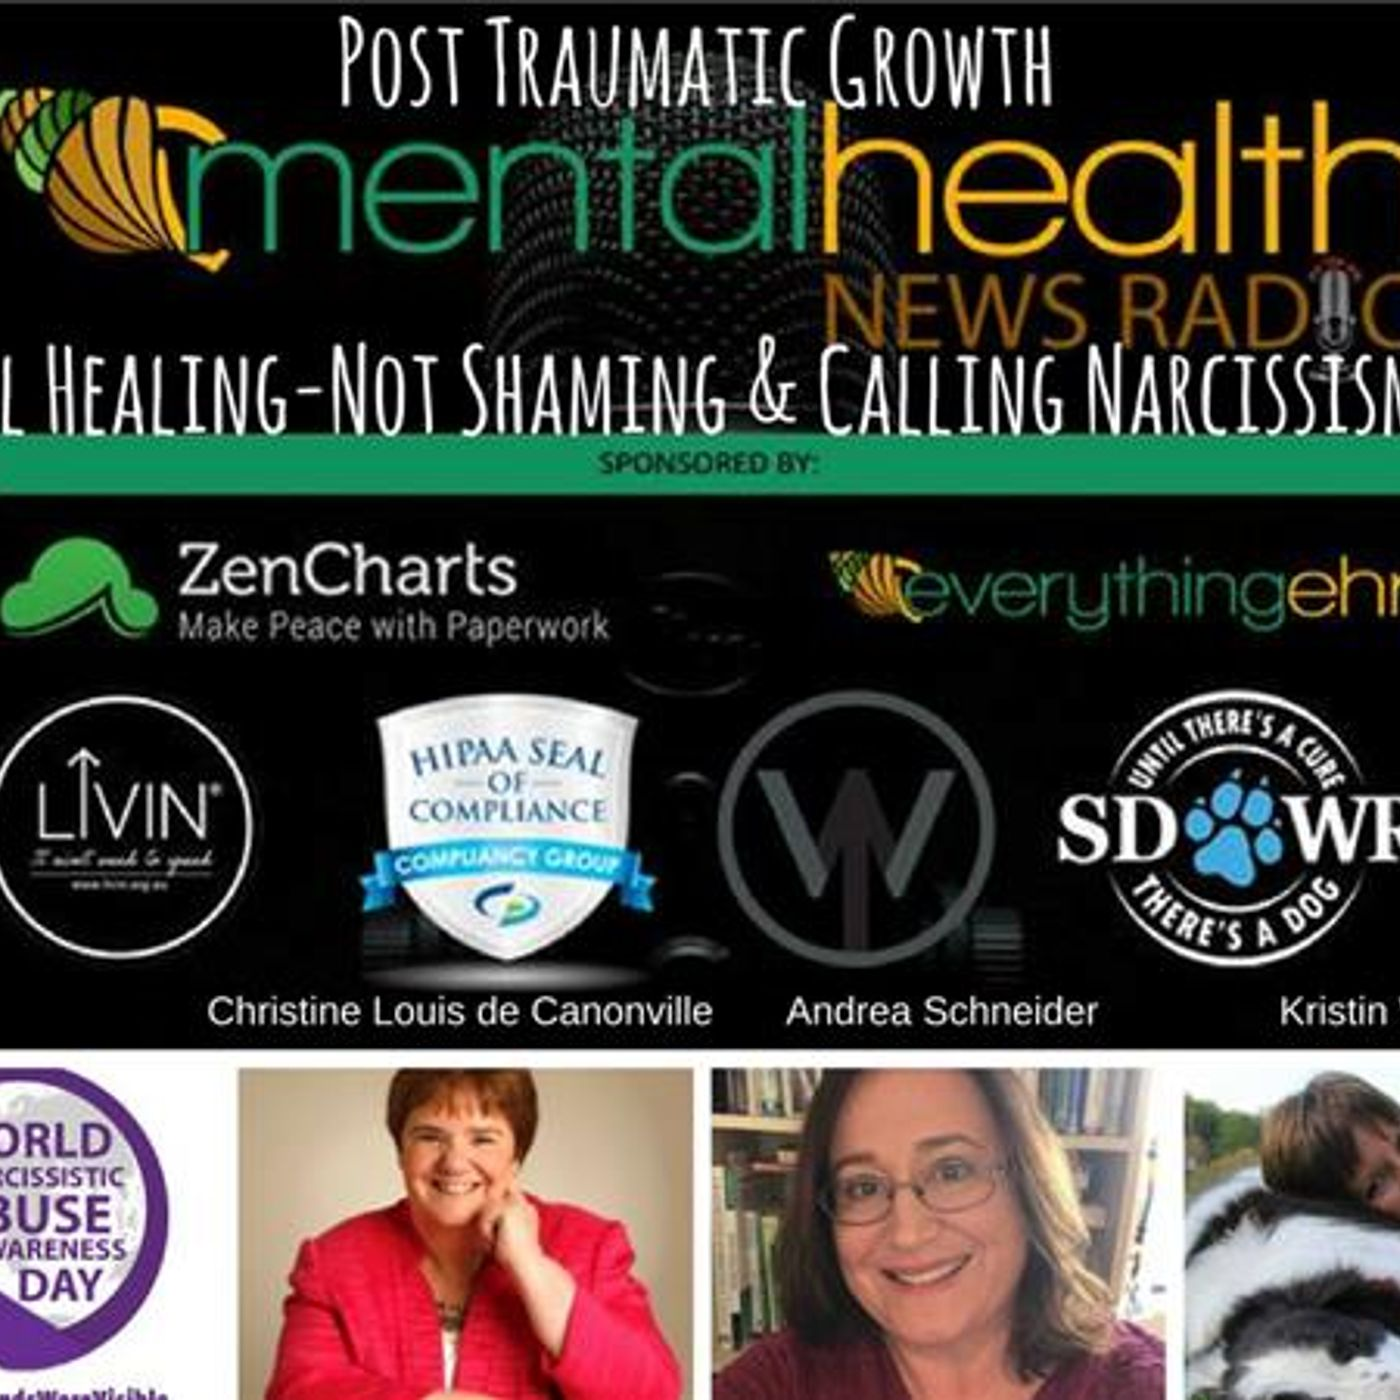 Mental Health News Radio - Post Traumatic Growth: Global Healing-Not Shaming & Calling Narcissism Out!